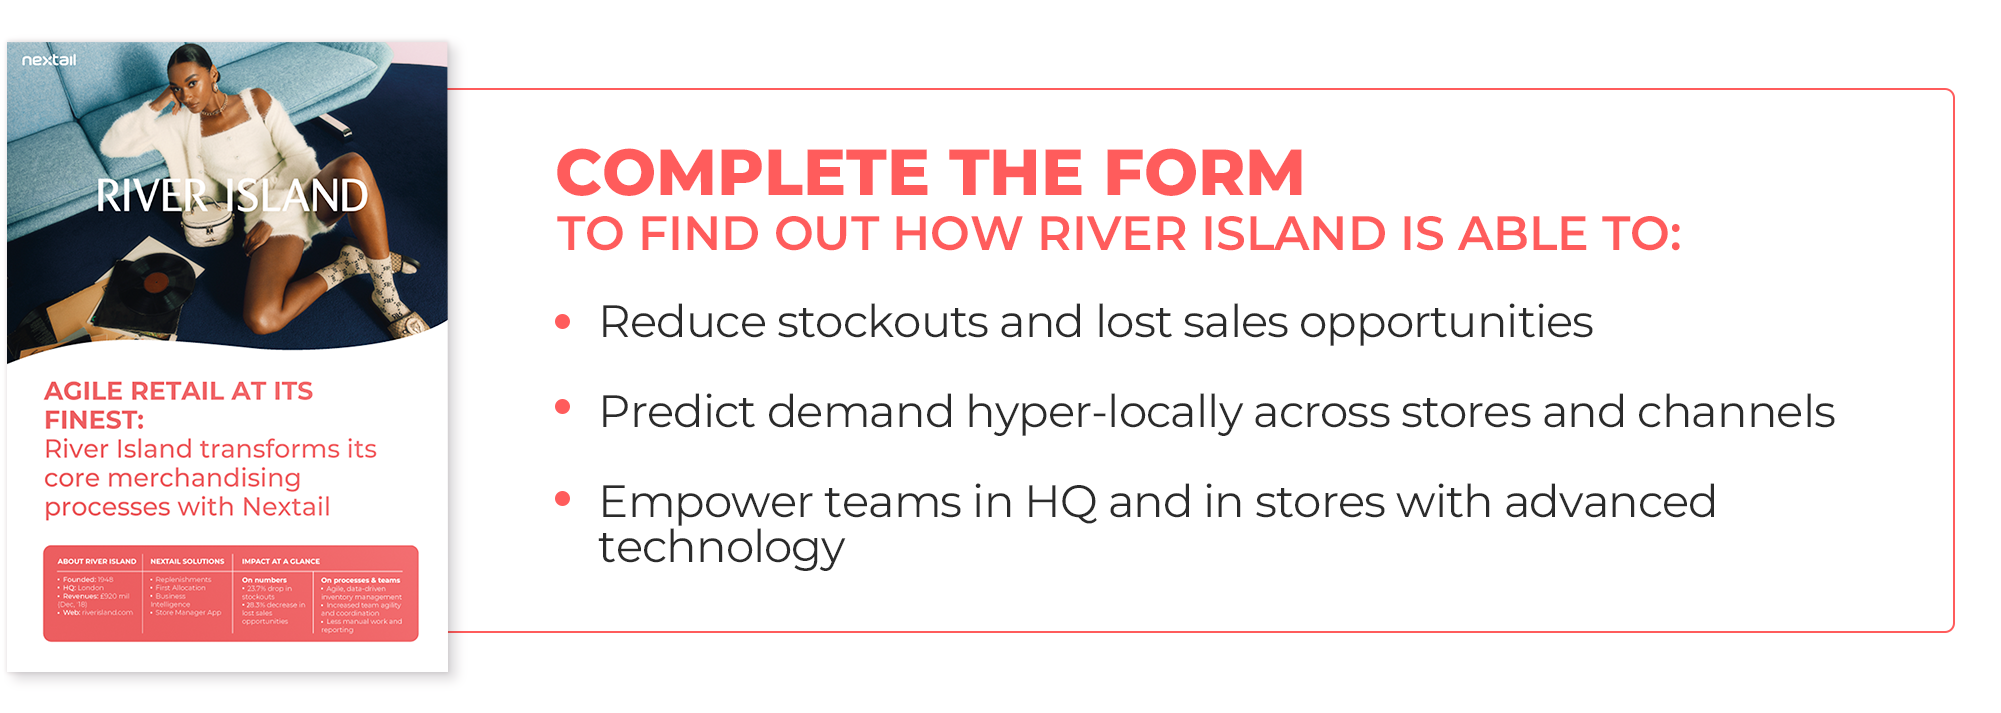 Image of the River Island case study describing the change of its merchandising processes